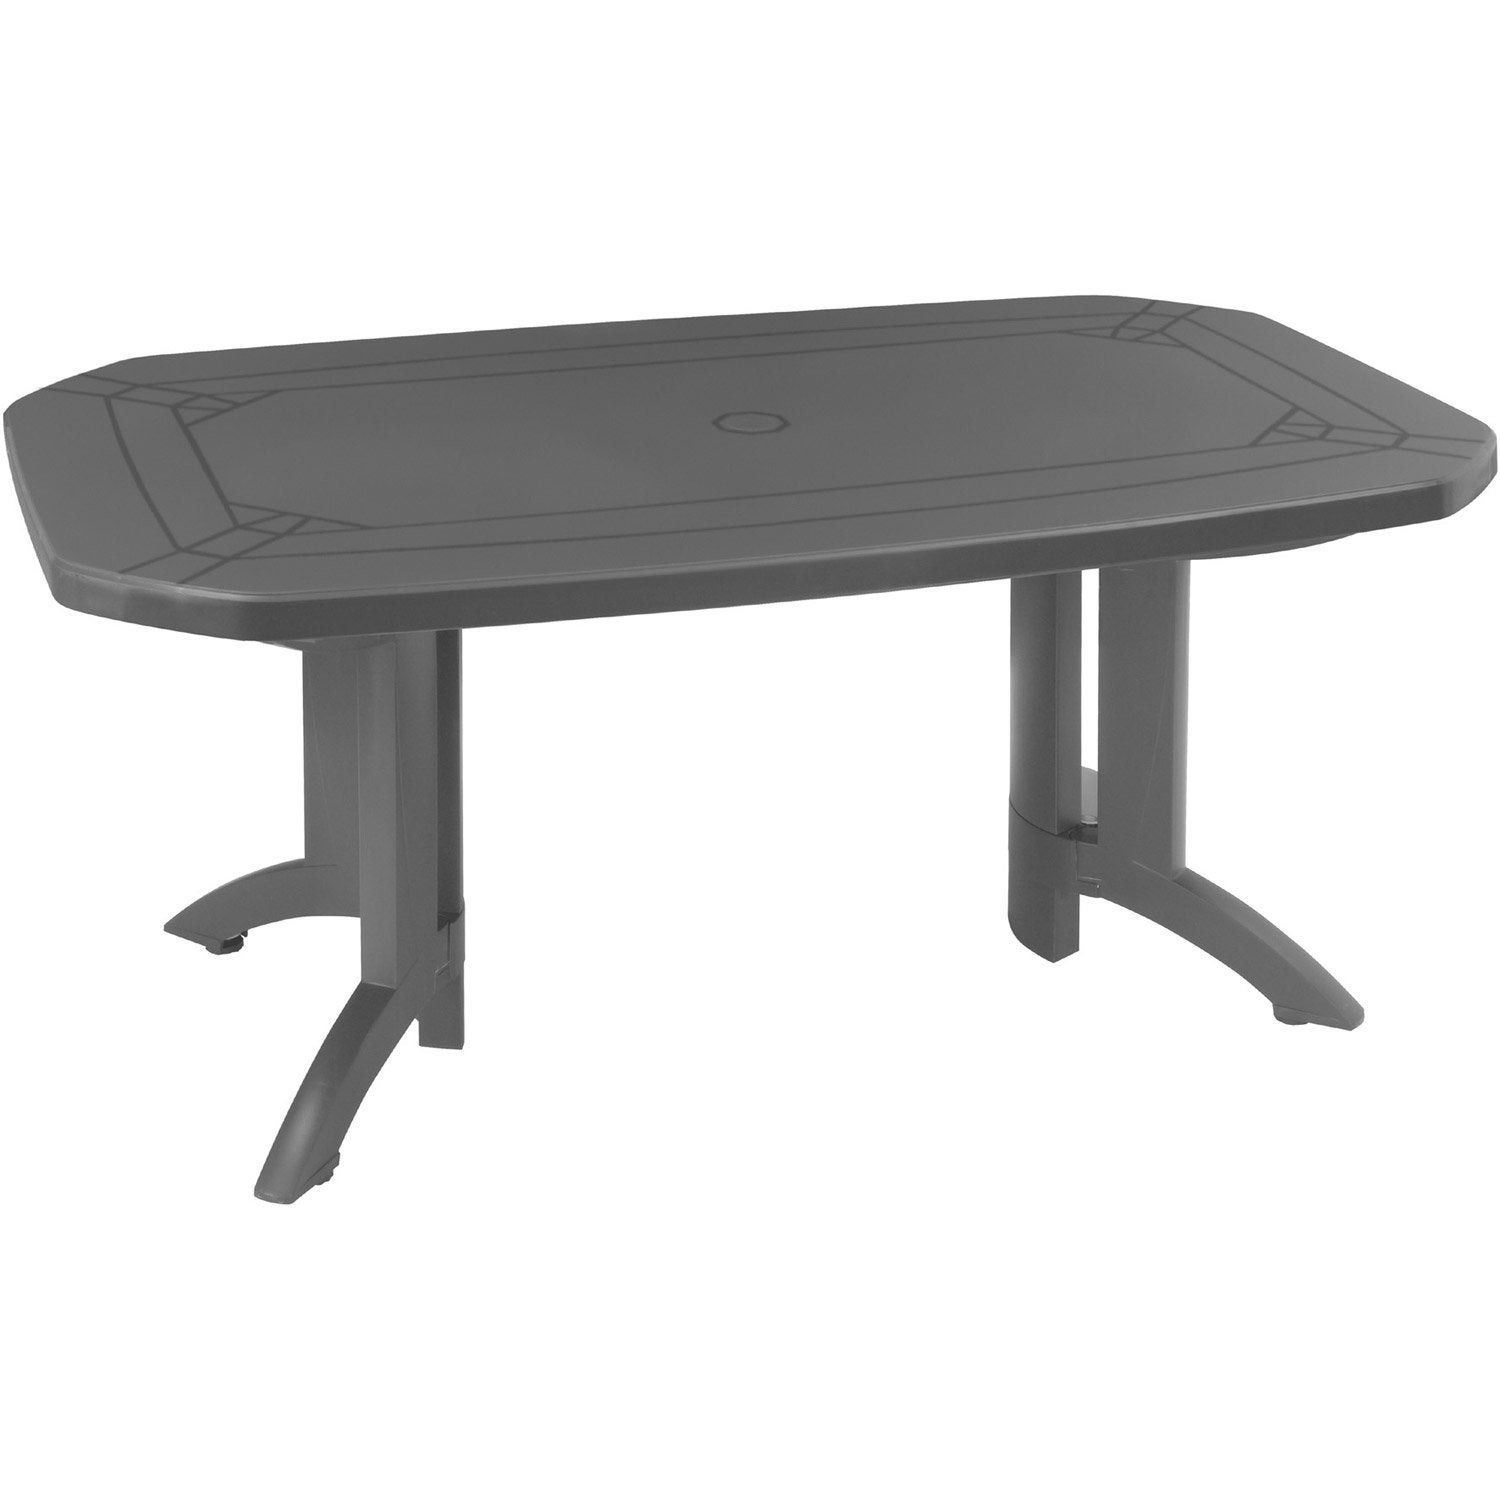 table de jardin rectangulaire v ga grosfillex leroy merlin. Black Bedroom Furniture Sets. Home Design Ideas